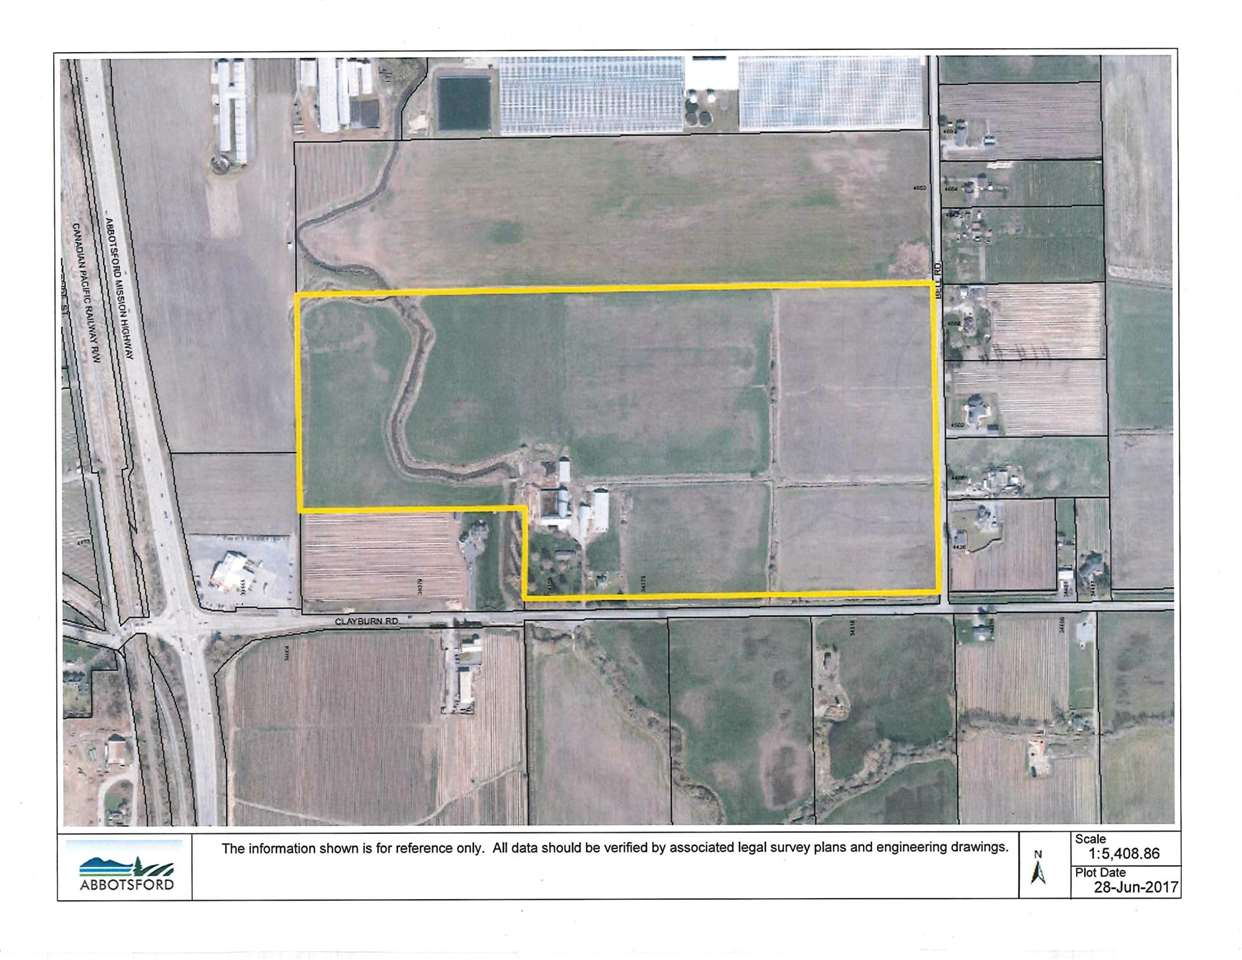 72 Prime Matsqui Acreage, ready for your ideas. Former Dairy Farm. Several outbuildings and 2 homes. Need work but could generate income. 177 Acres available in total!